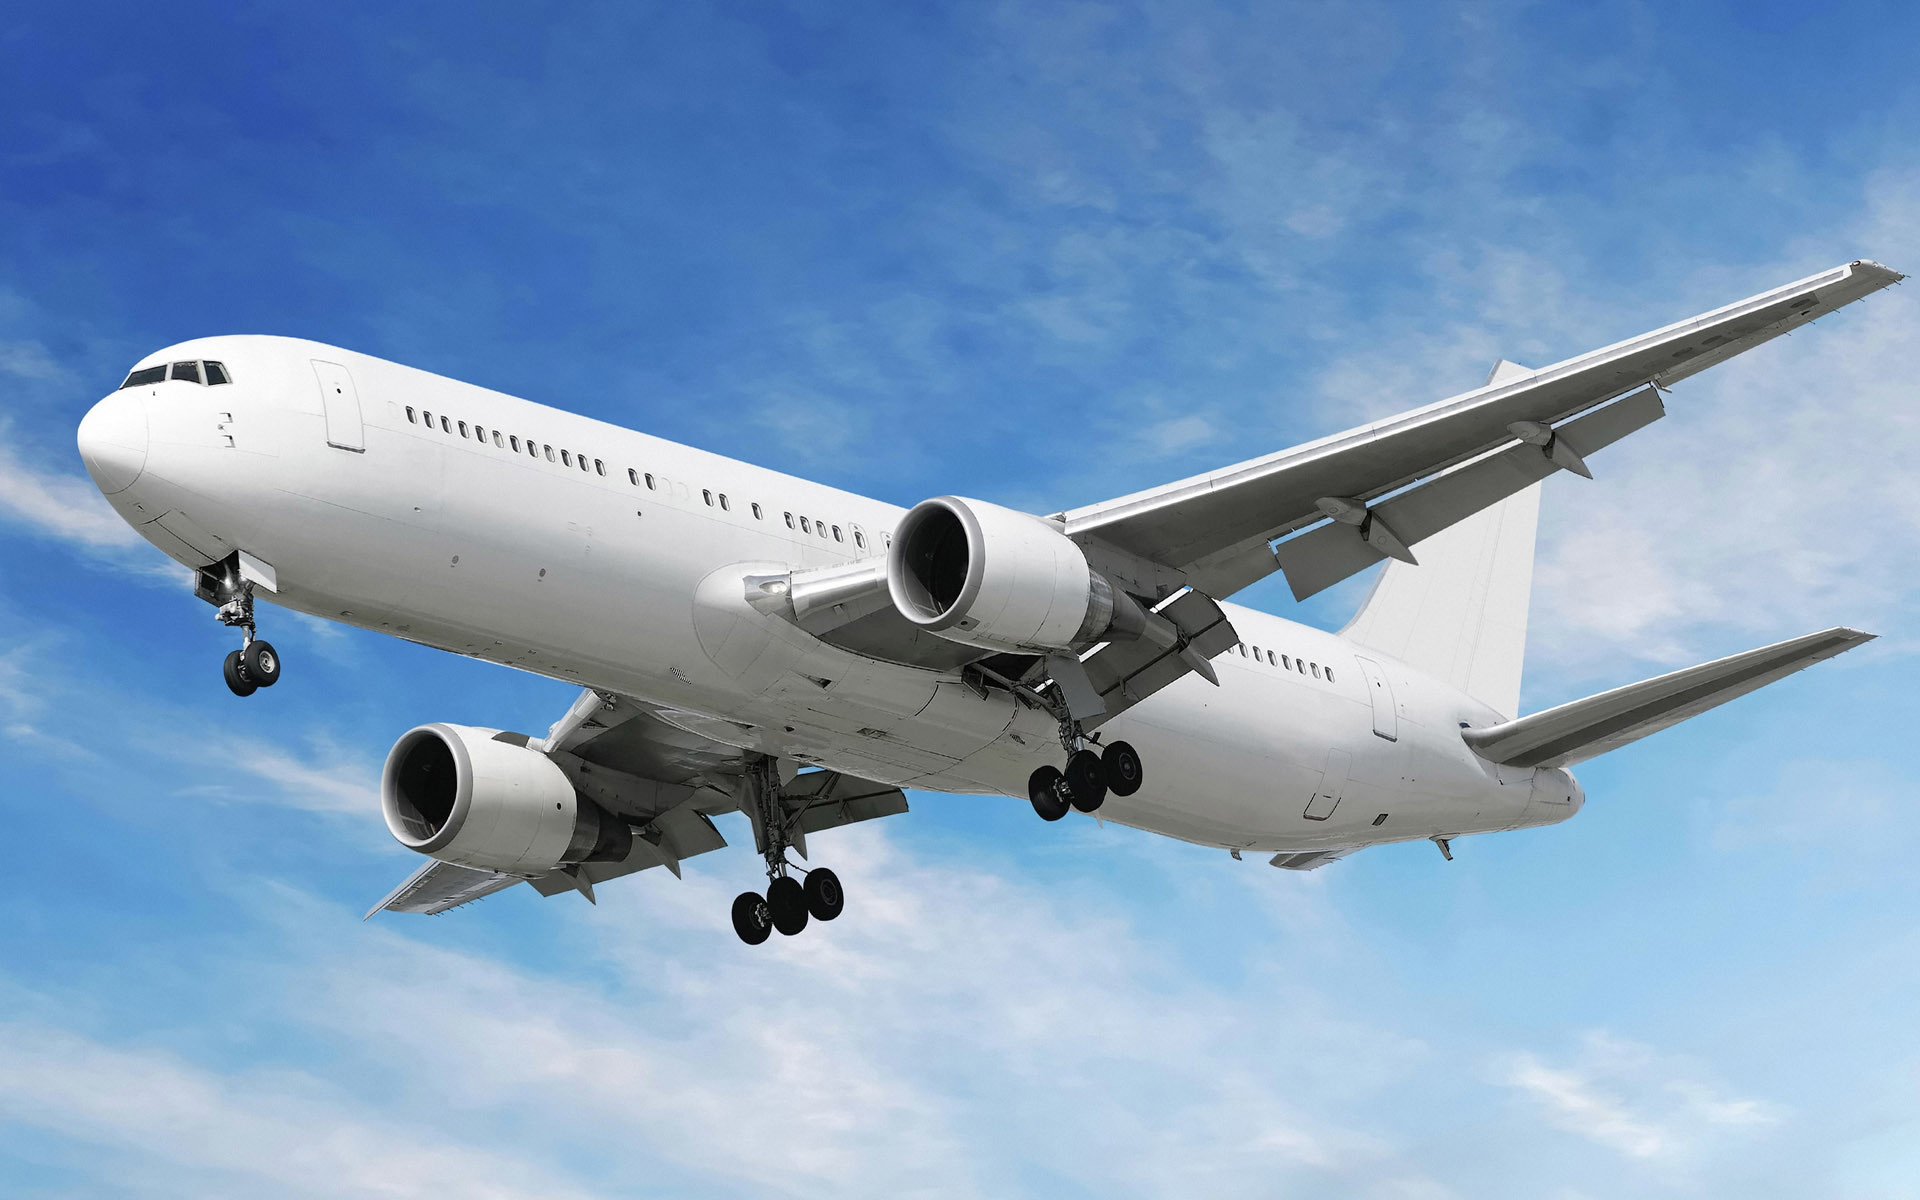 1920x1080 Related Wallpapers: aeroplane hd wallpaper